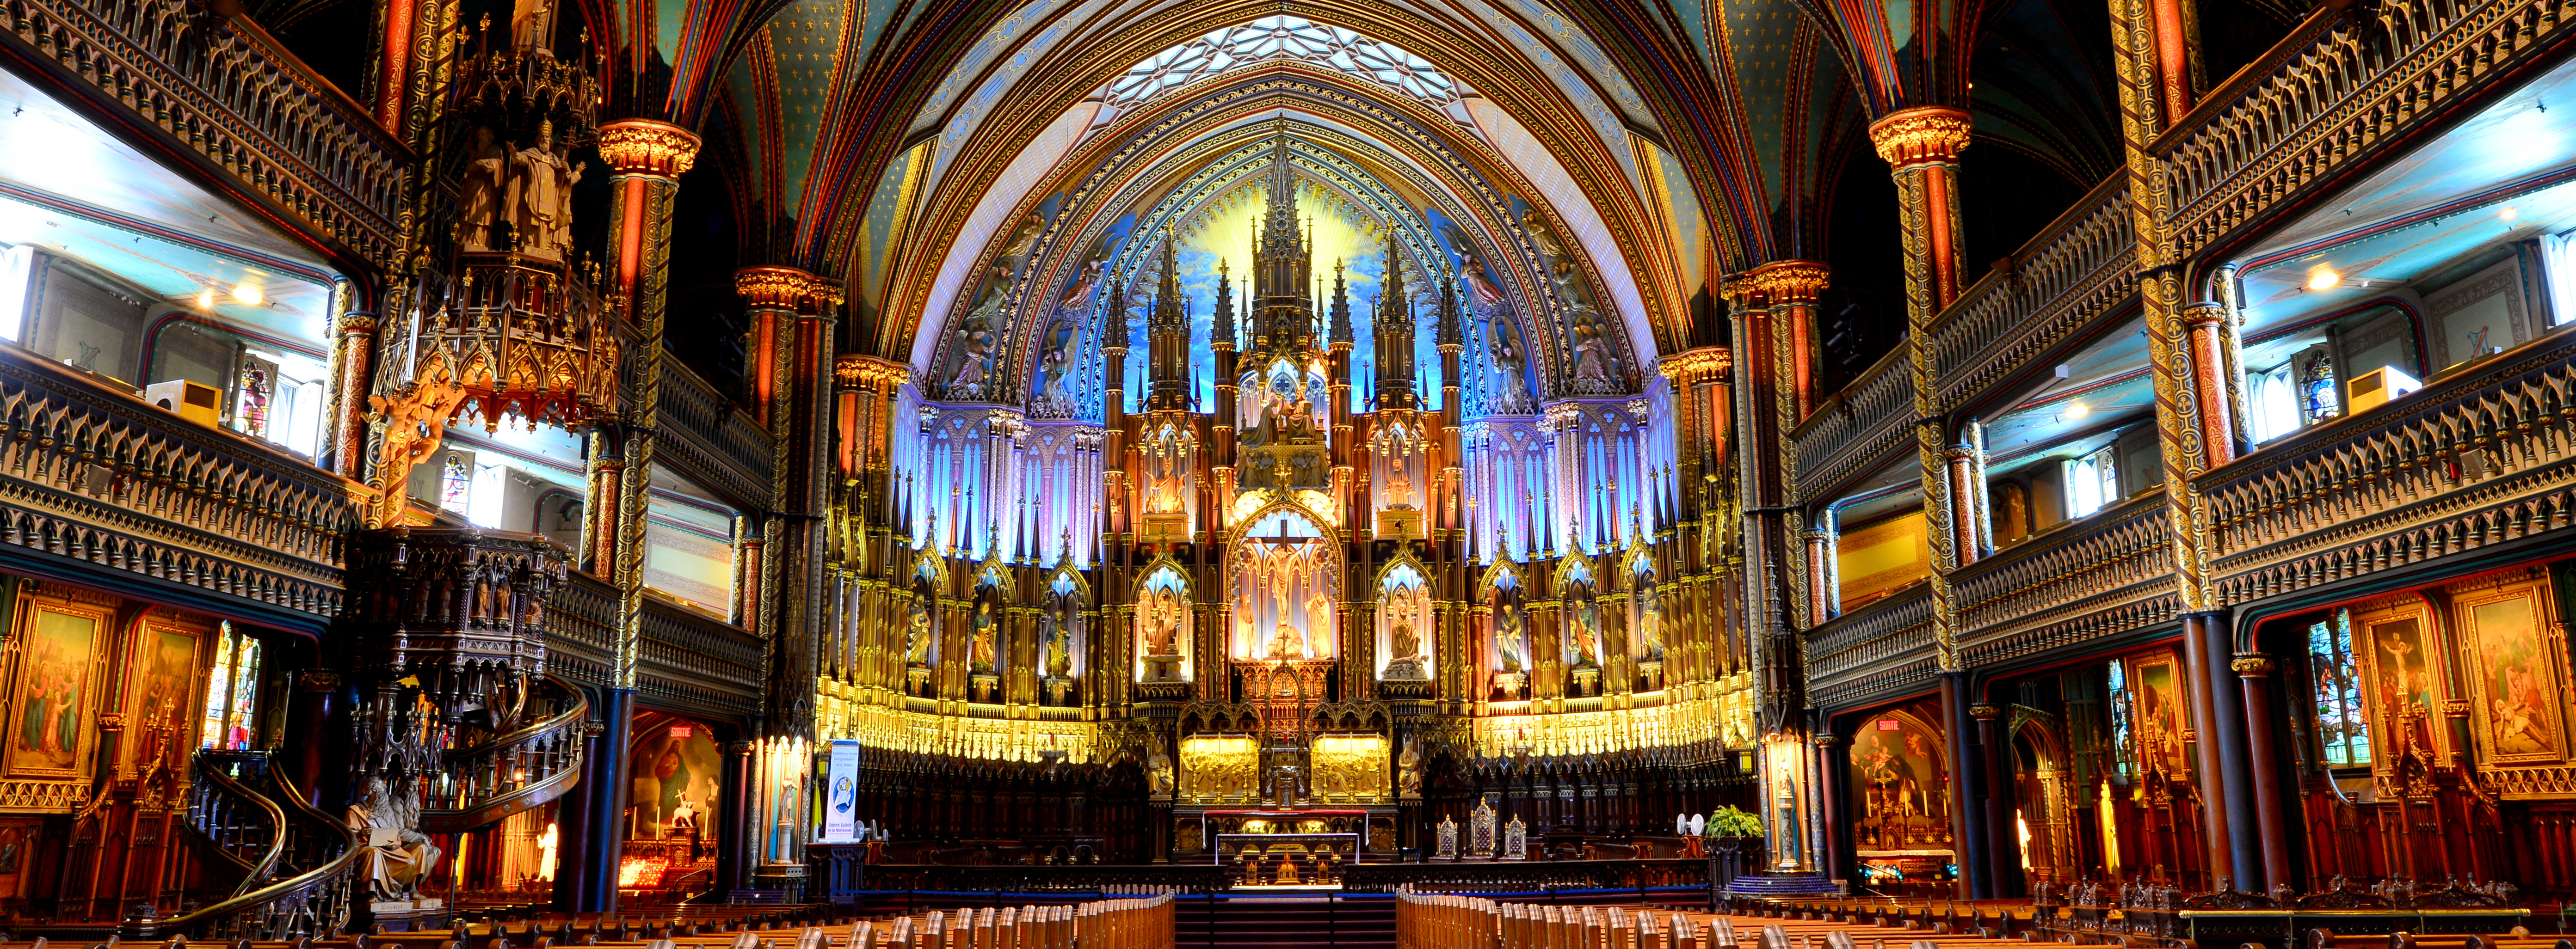 Notre Dame Basilica of Montreal (68)a_19